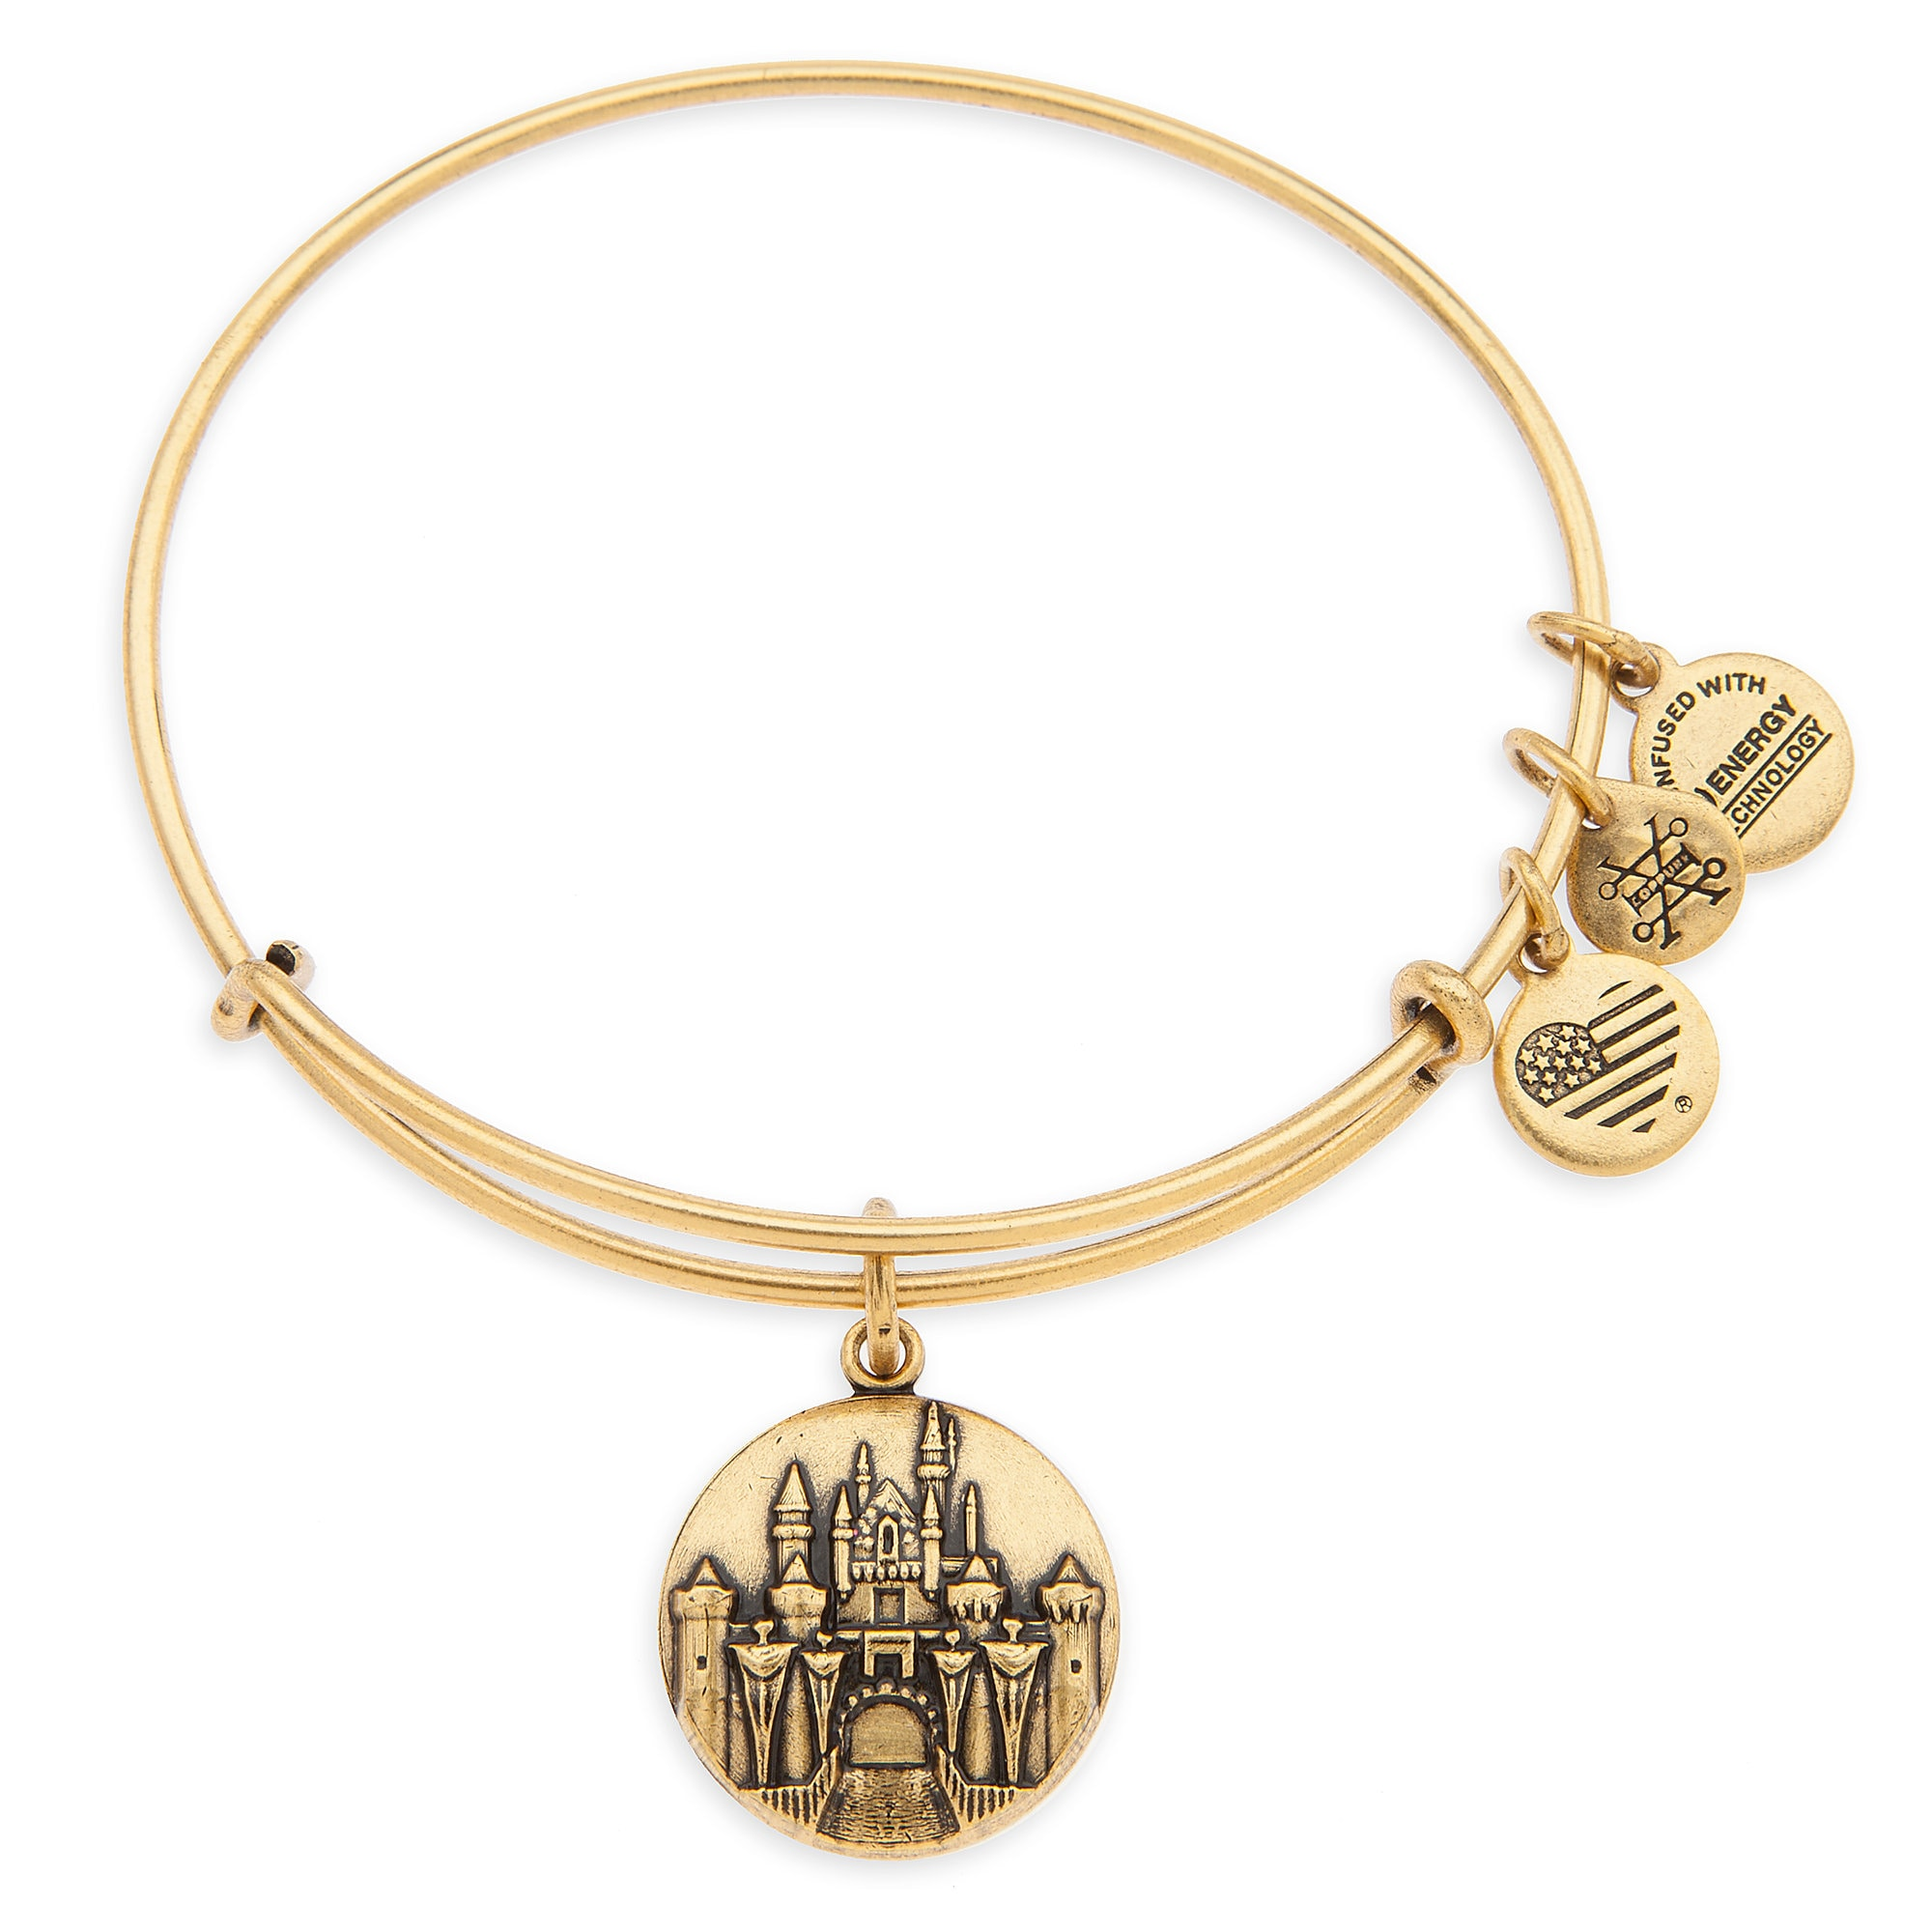 Sleeping Beauty Castle Bangle by Alex and Ani - Disneyland - Gold